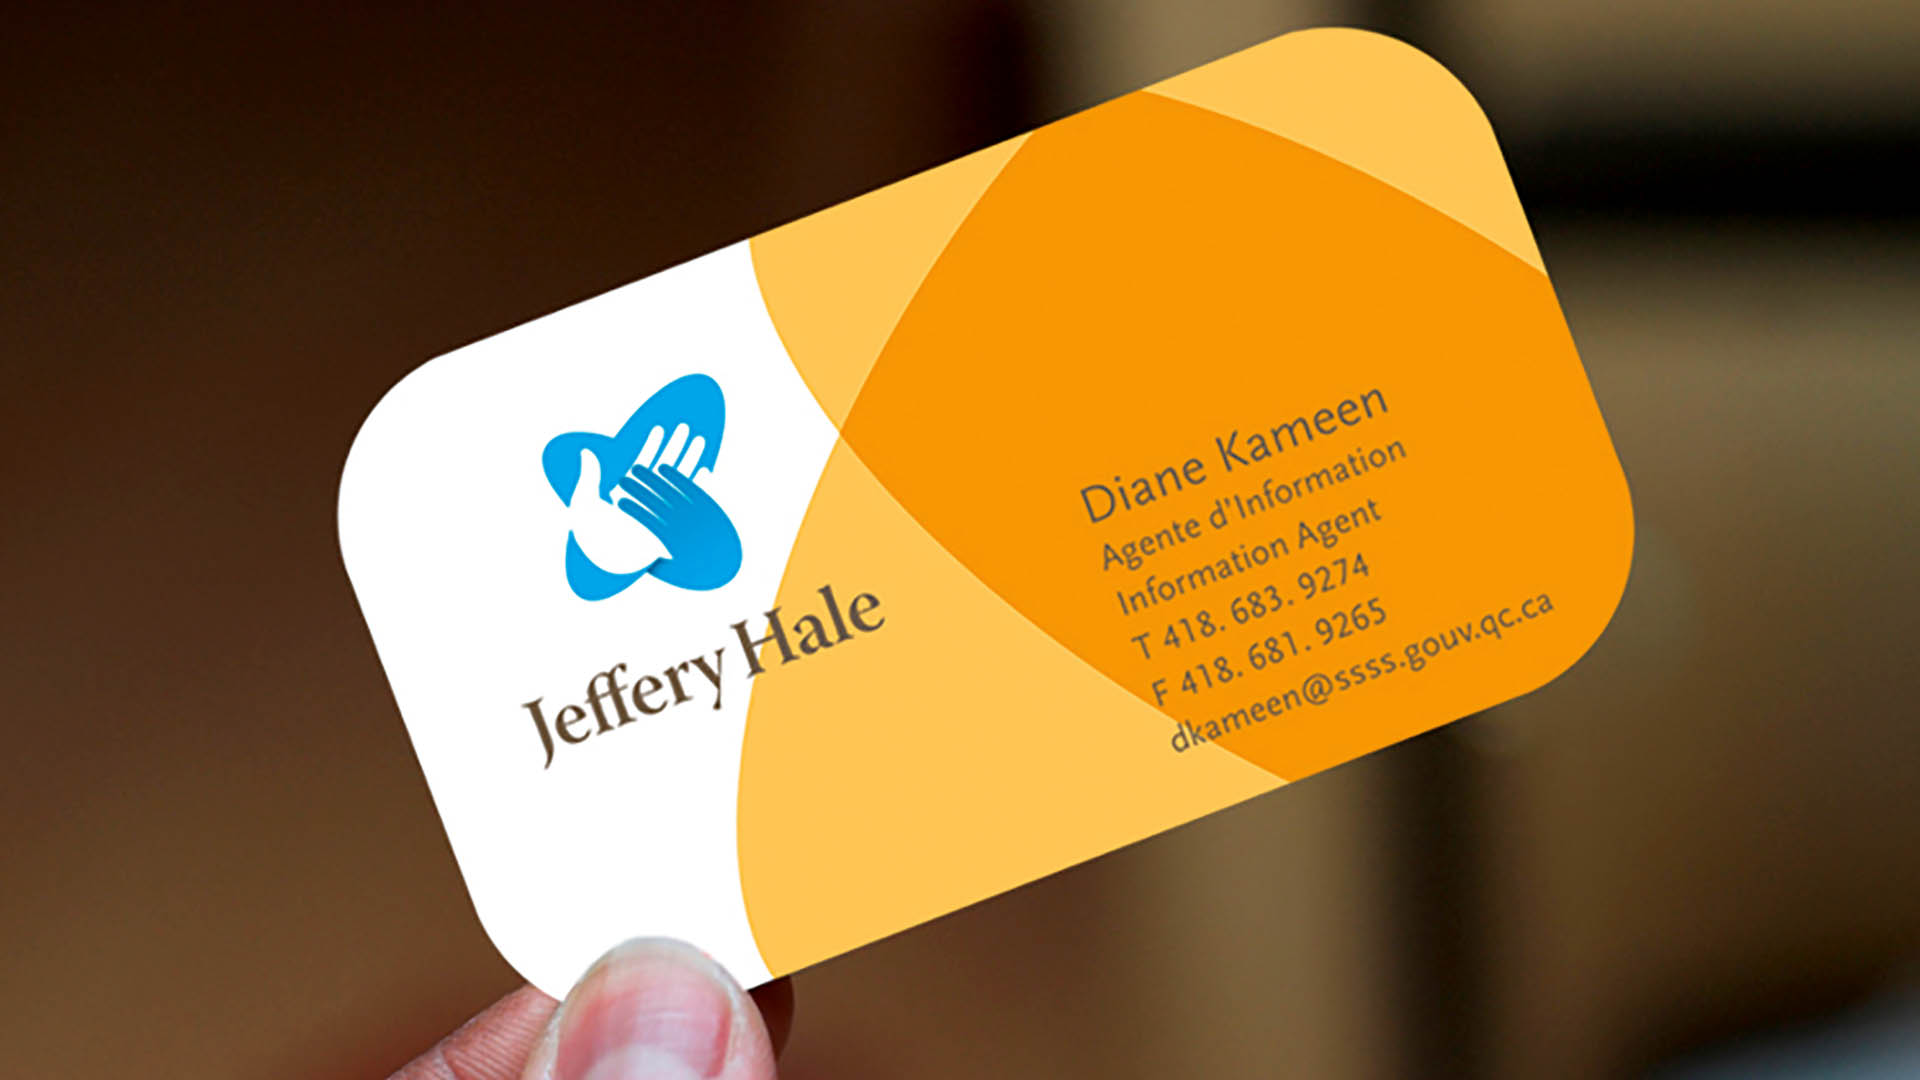 Jeffrey Hale Hospital, business cards, design system, brand and identity, logo, Romantic Brands, Michael Wou, Russell Volckmann